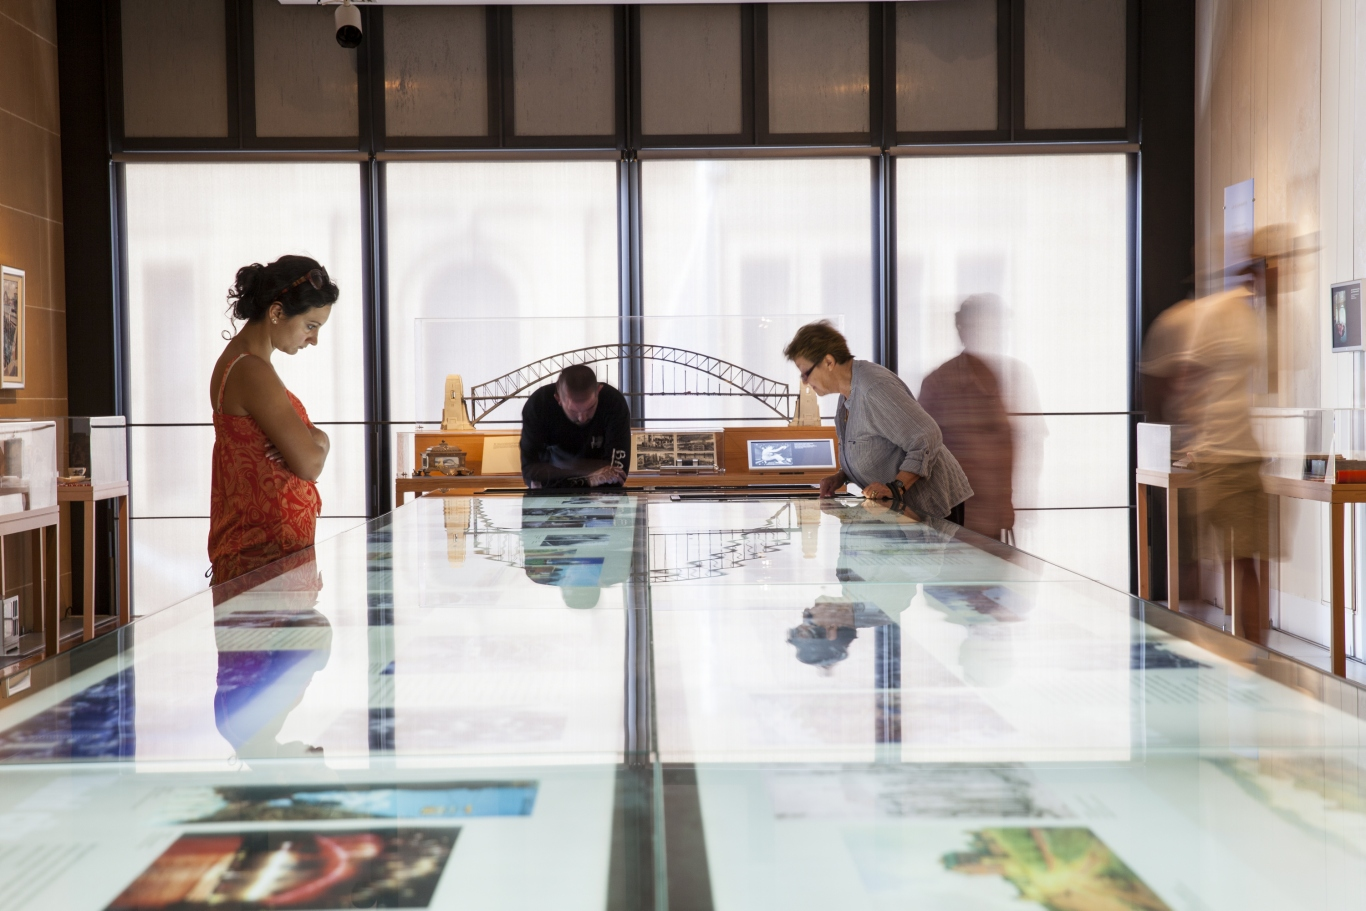 Image of visionaries exhibition. A long display case stretches out in front of the camera and people are leaning over and reading.